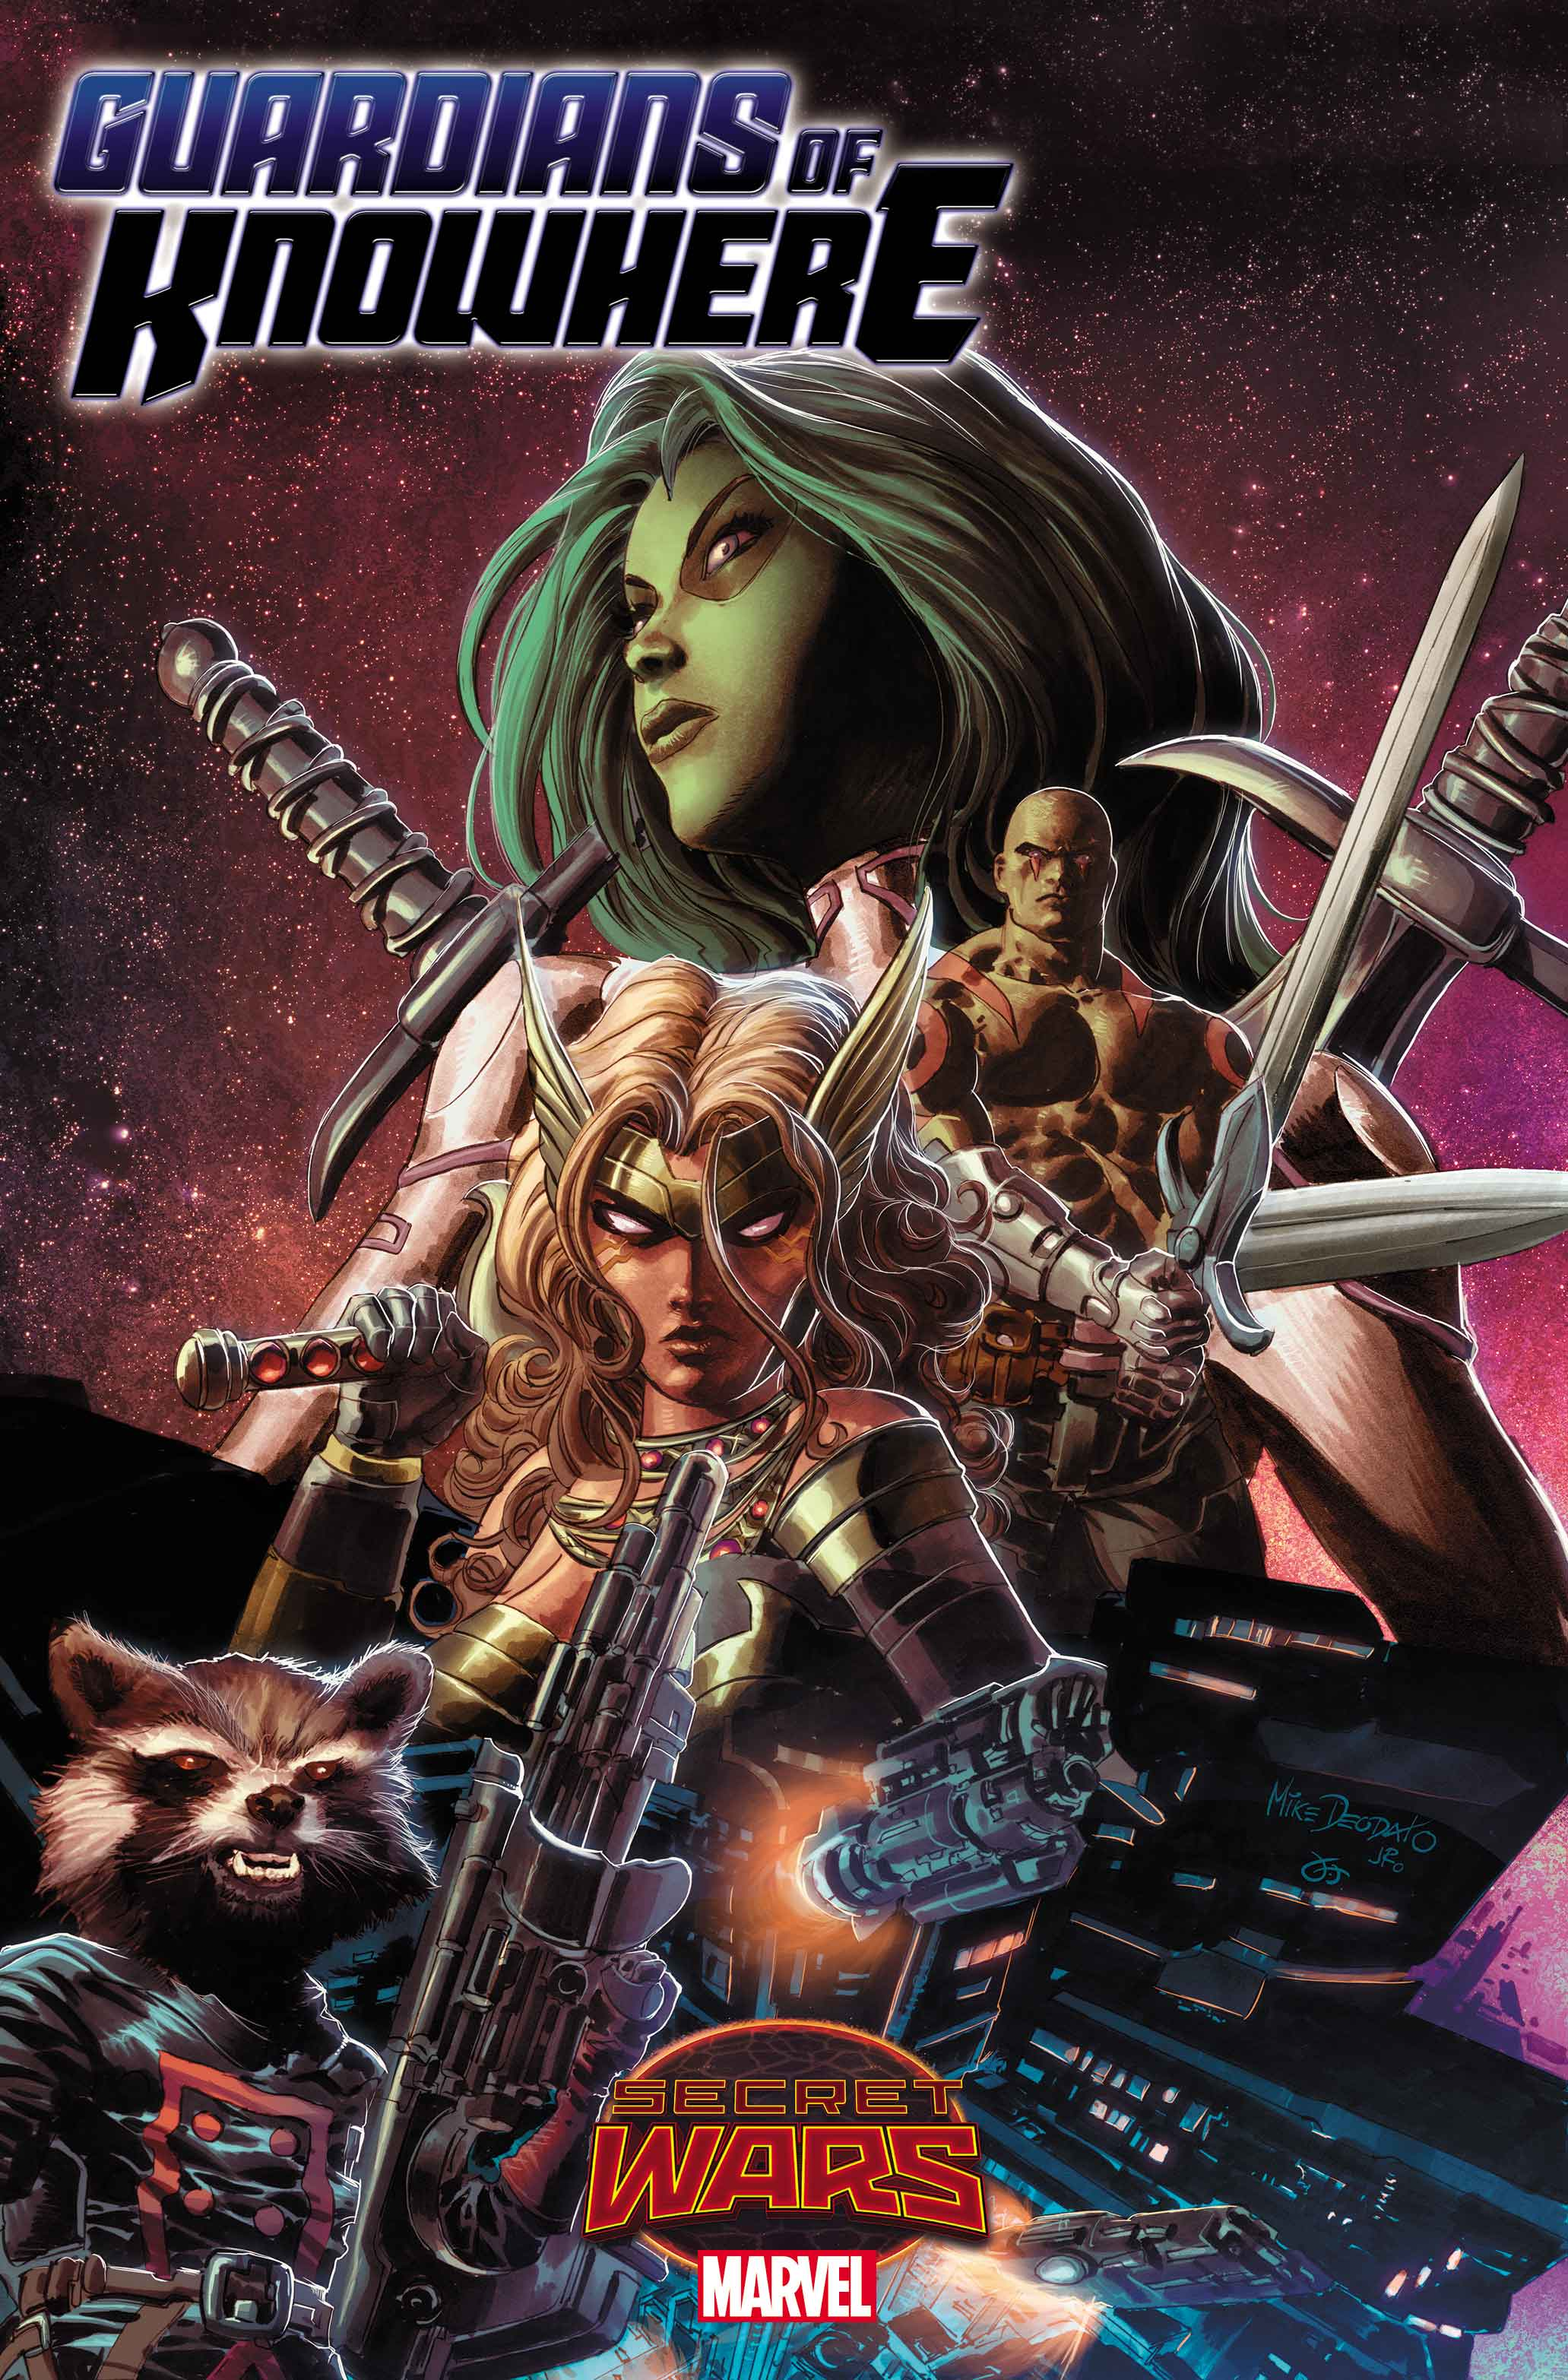 Guardians of Knowhere #1 (Secret Wars)